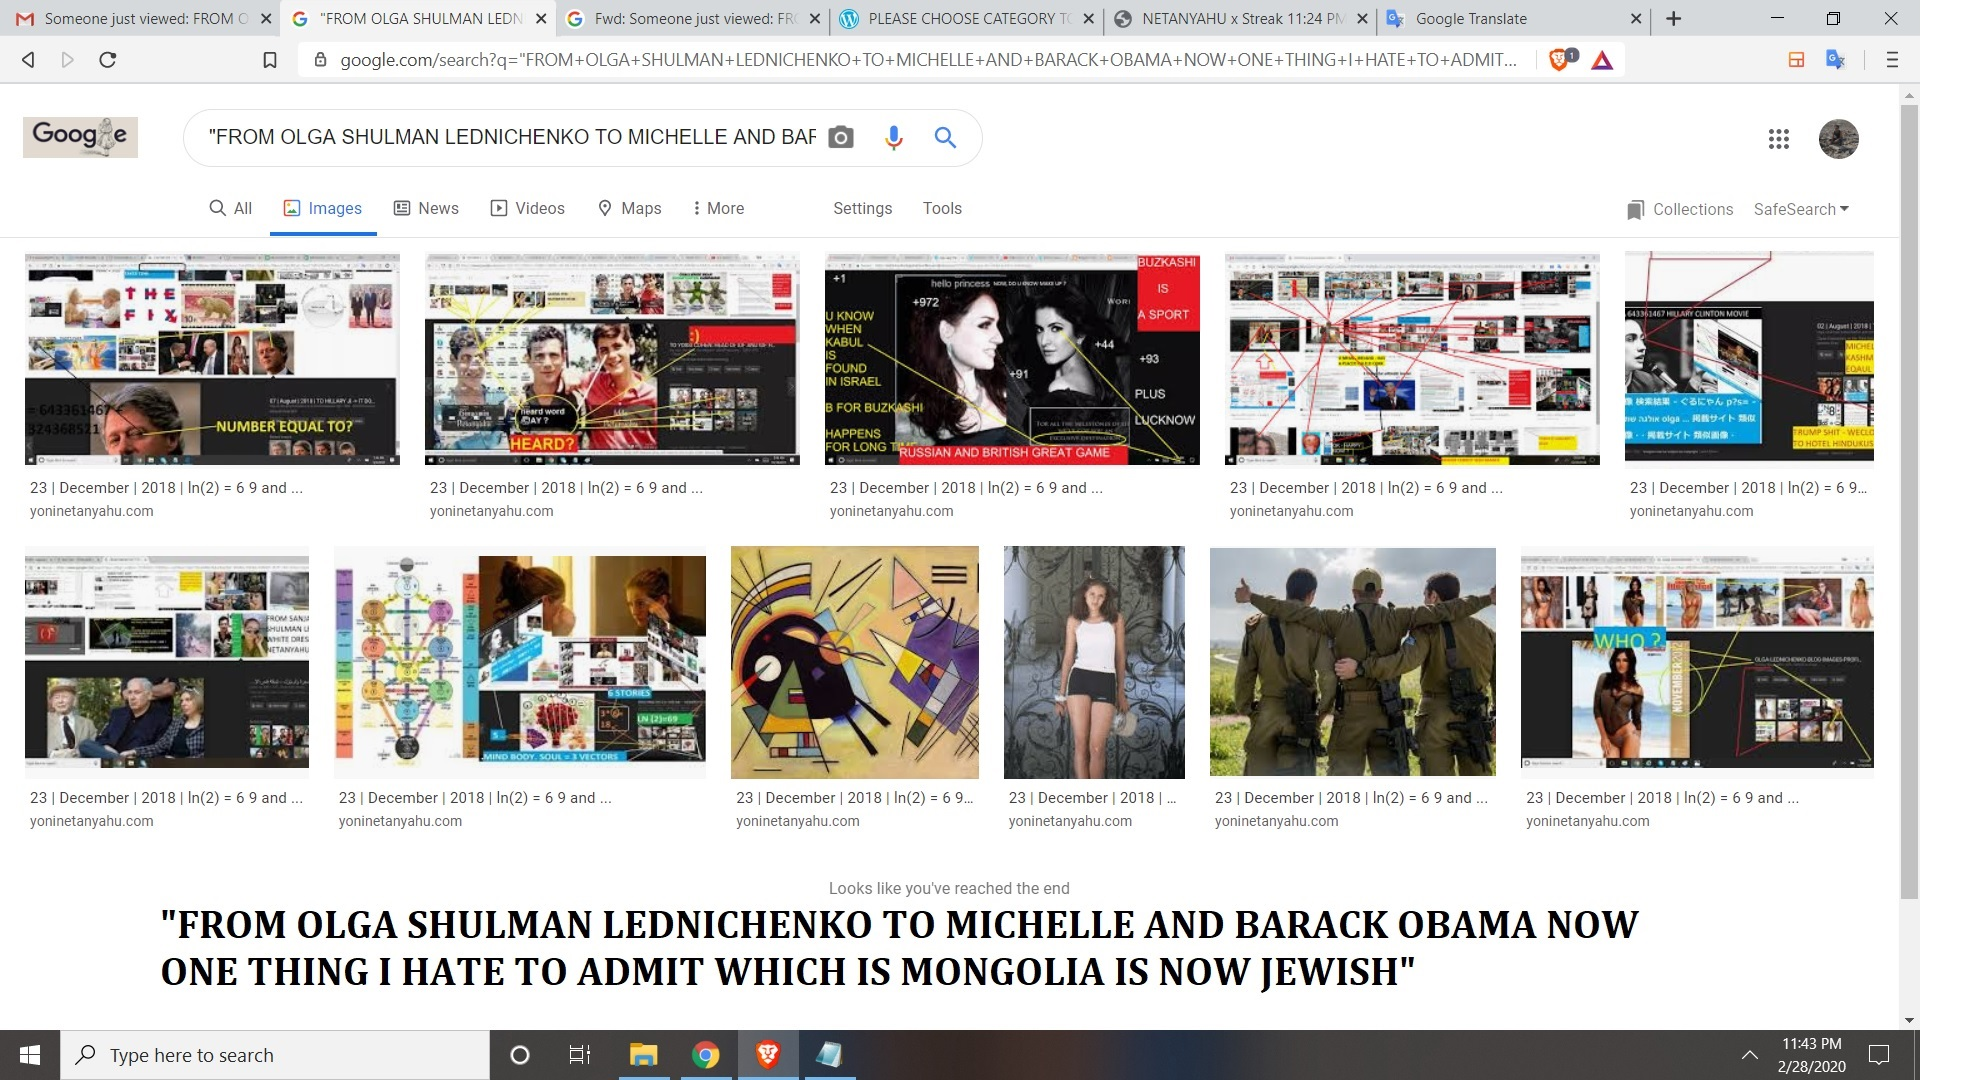 FROM OLGA SHULMAN LEDNICHENKO TO MICHELLE AND BARACK OBAMA NOW ONE THING I HATE TO ADMIT WHICH IS MONGOLIA IS NOW JEWISH